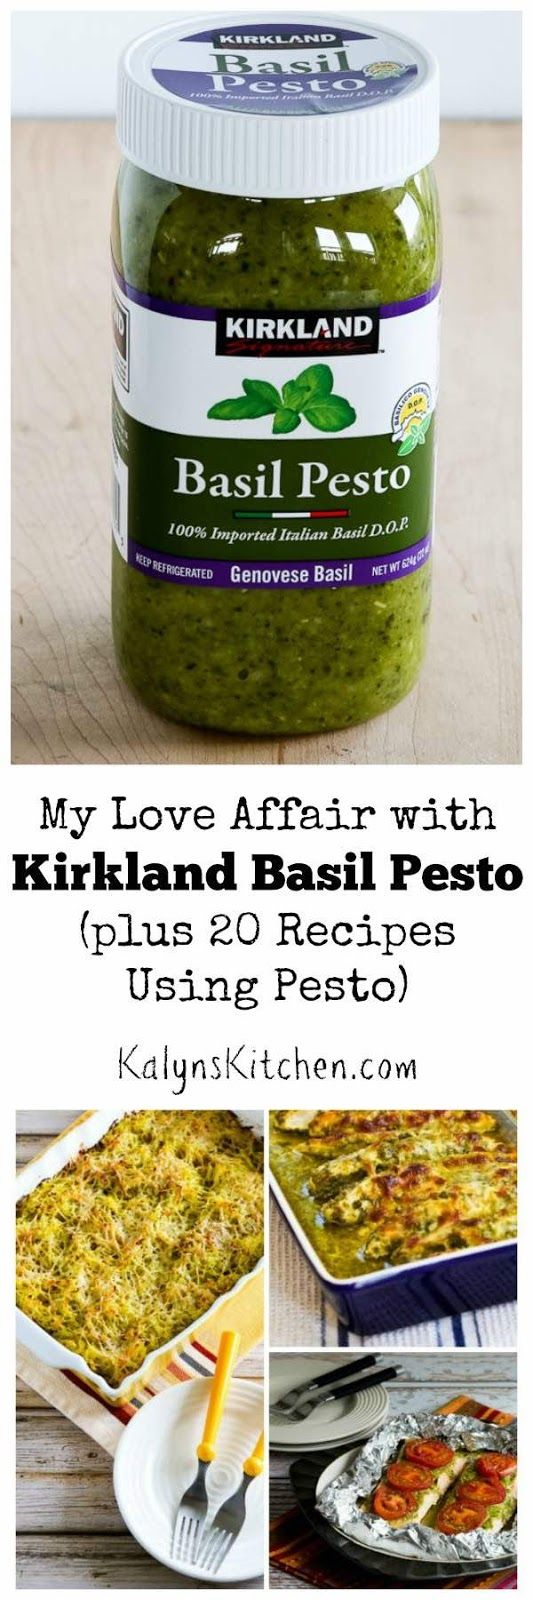 Kalyn's Kitchen Picks: Kirkland Basil Pesto, plus 20 recipes using Pesto from Kalyn and other bloggers! Nothing can beat fresh homemade pesto but this is great when you don't have fresh basil. [found on KalynsKitchen.com] #BasilPestoRecipes #KirklandBasilPesto #BasilPesto